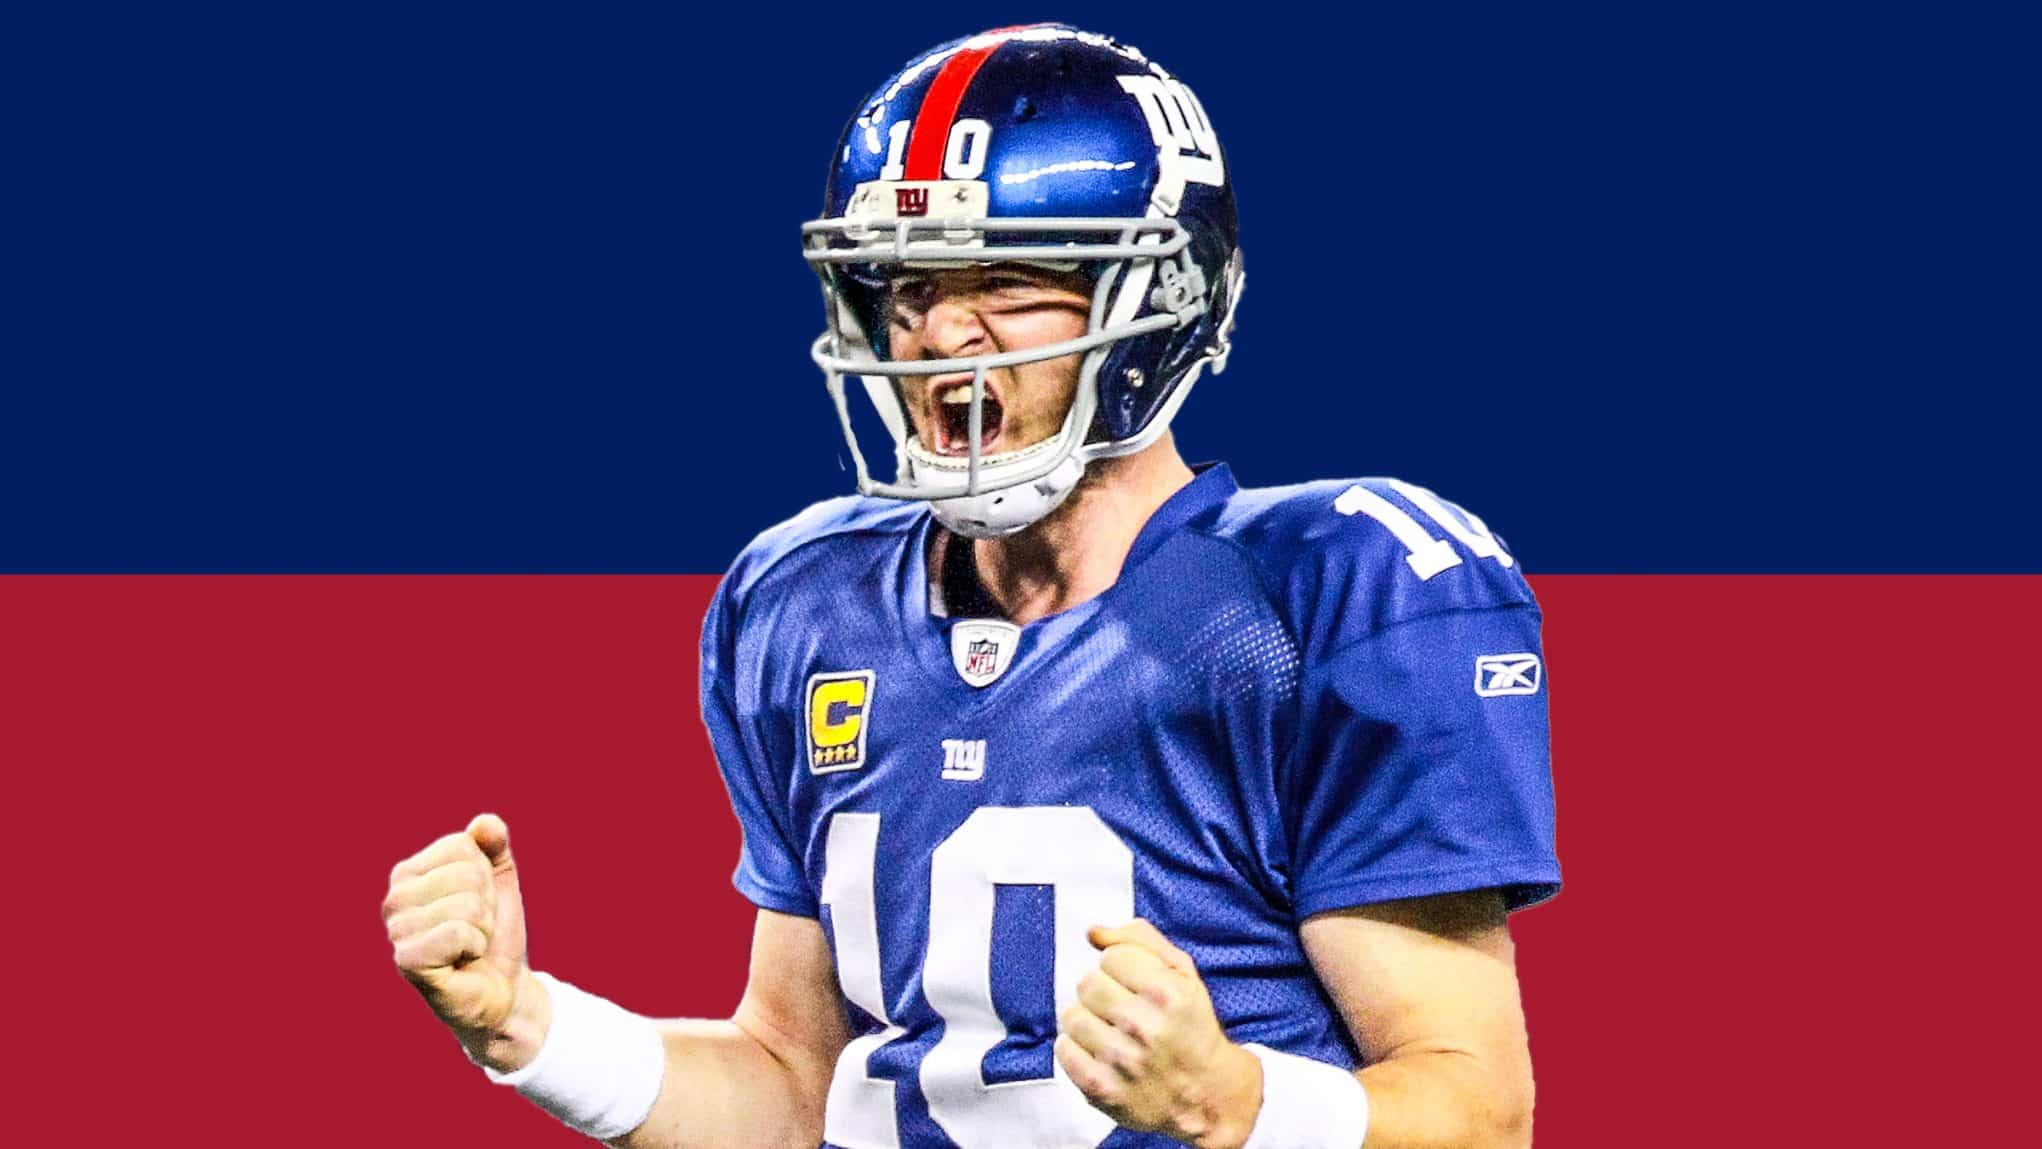 reputable site e4361 63874 New York Giants: 5 Eli Manning things to watch for in 2019